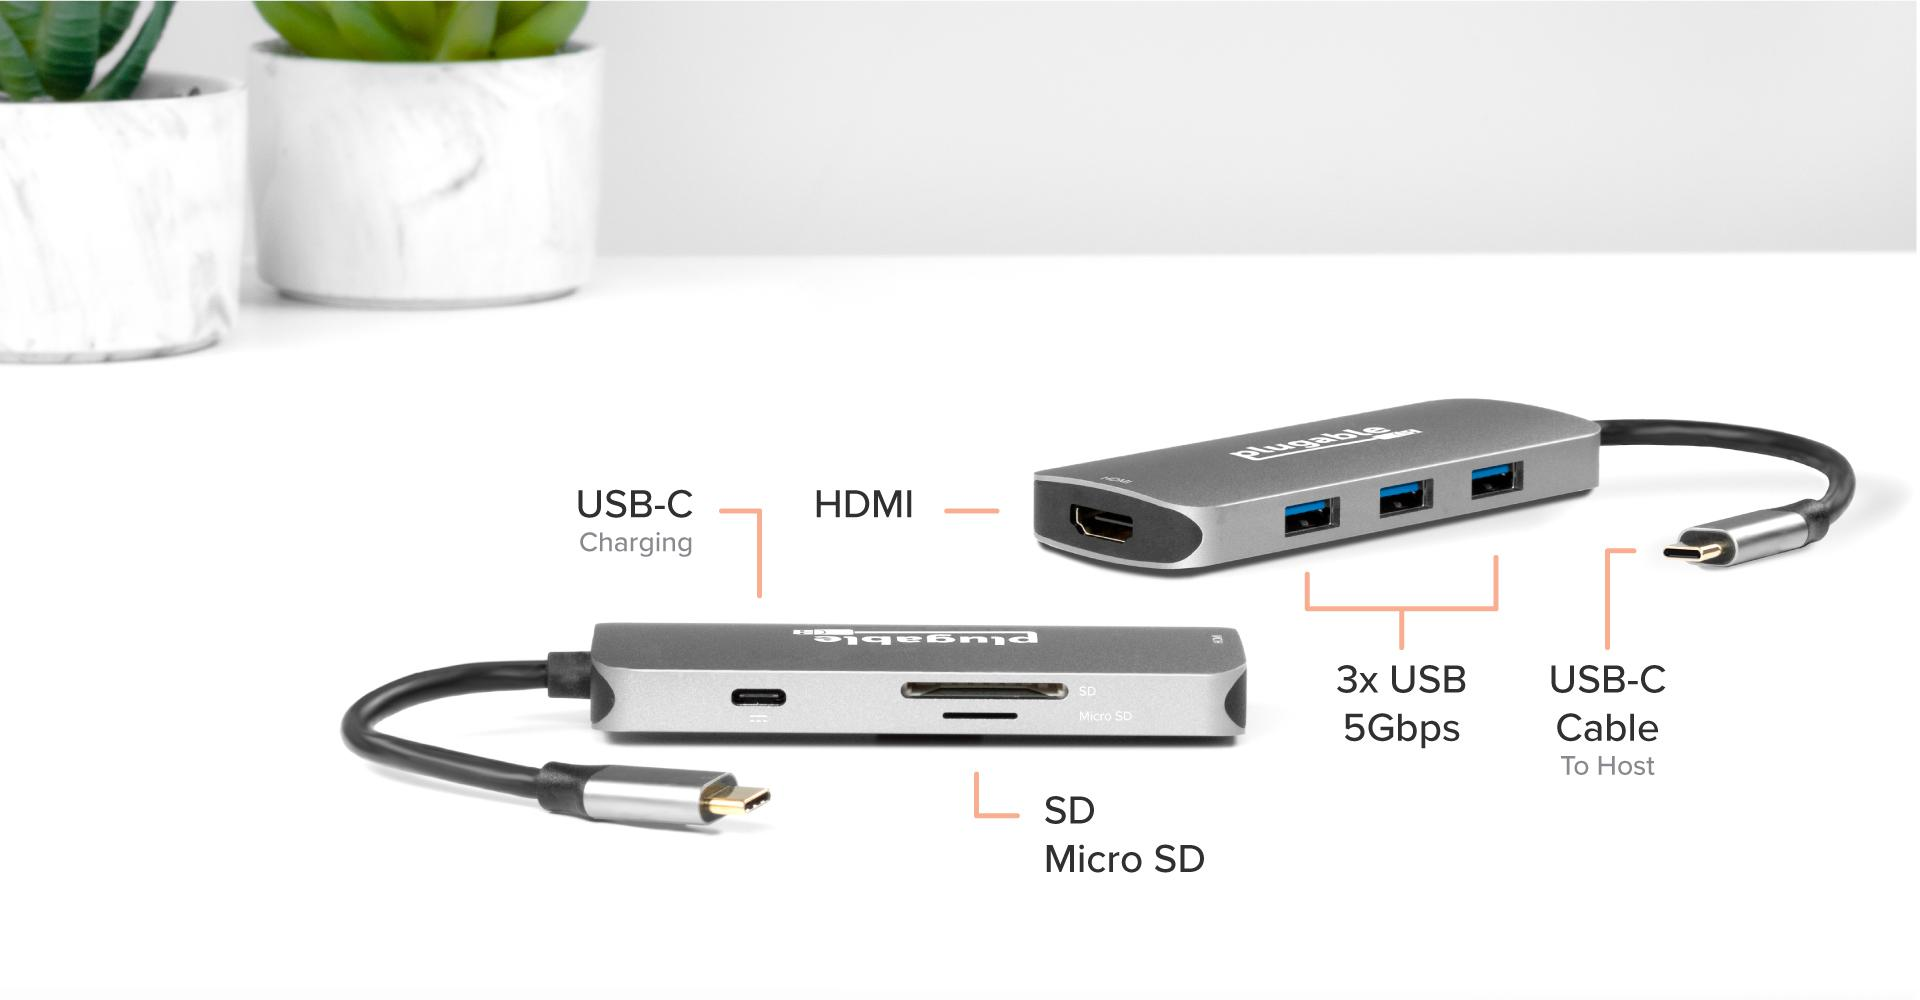 The hub supports not only a variety of data connections but also an HDMI port